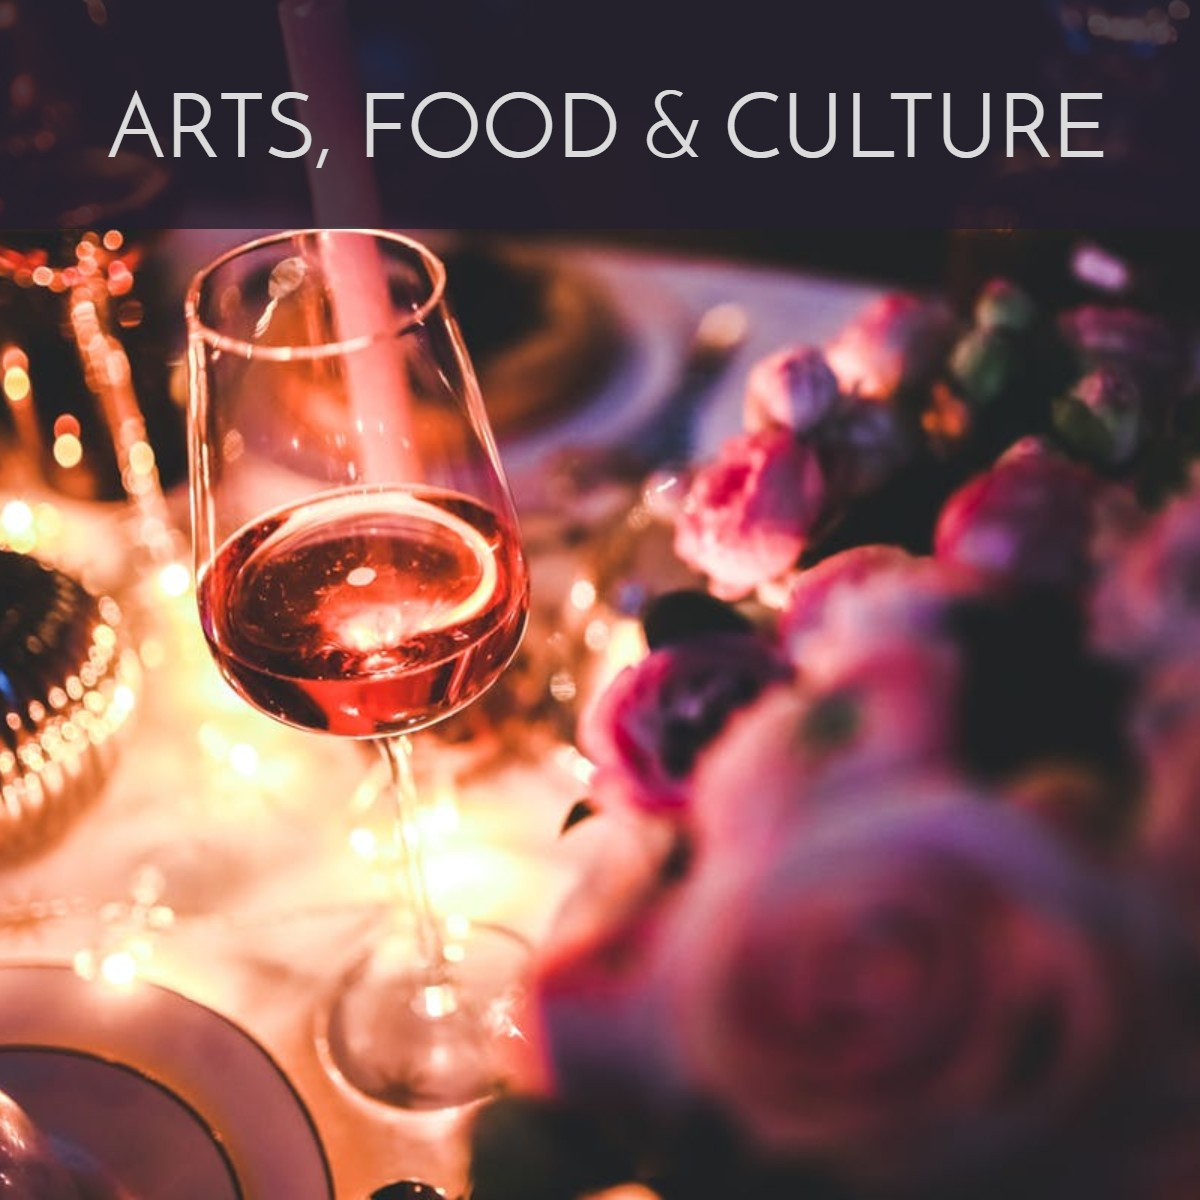 Member podcasts : anticulture with Josiah Sinanan, Calgary Culture: The Perspectives YYC Podcast, Eat More Barbecue, I Don't Get It, Mess Hall Podcast, Tomato Radio